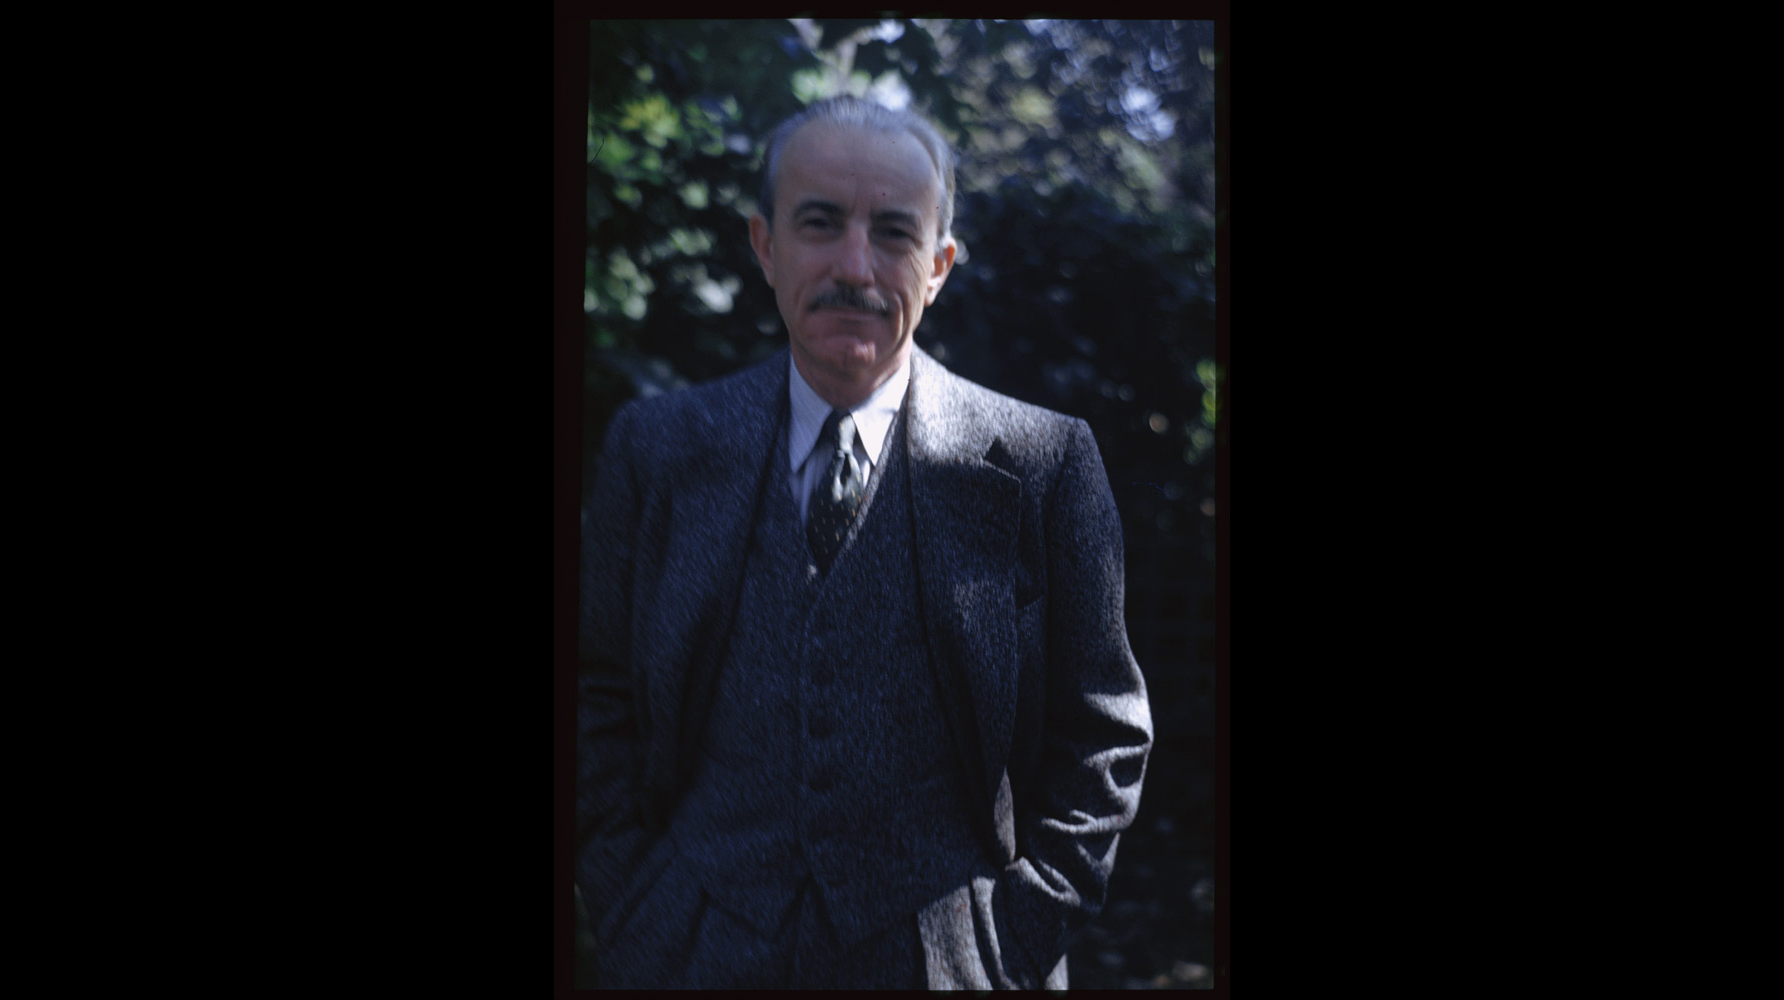 A rare self-portrait of the photographer Charles W. Cushman in Sep. 13; 1949.